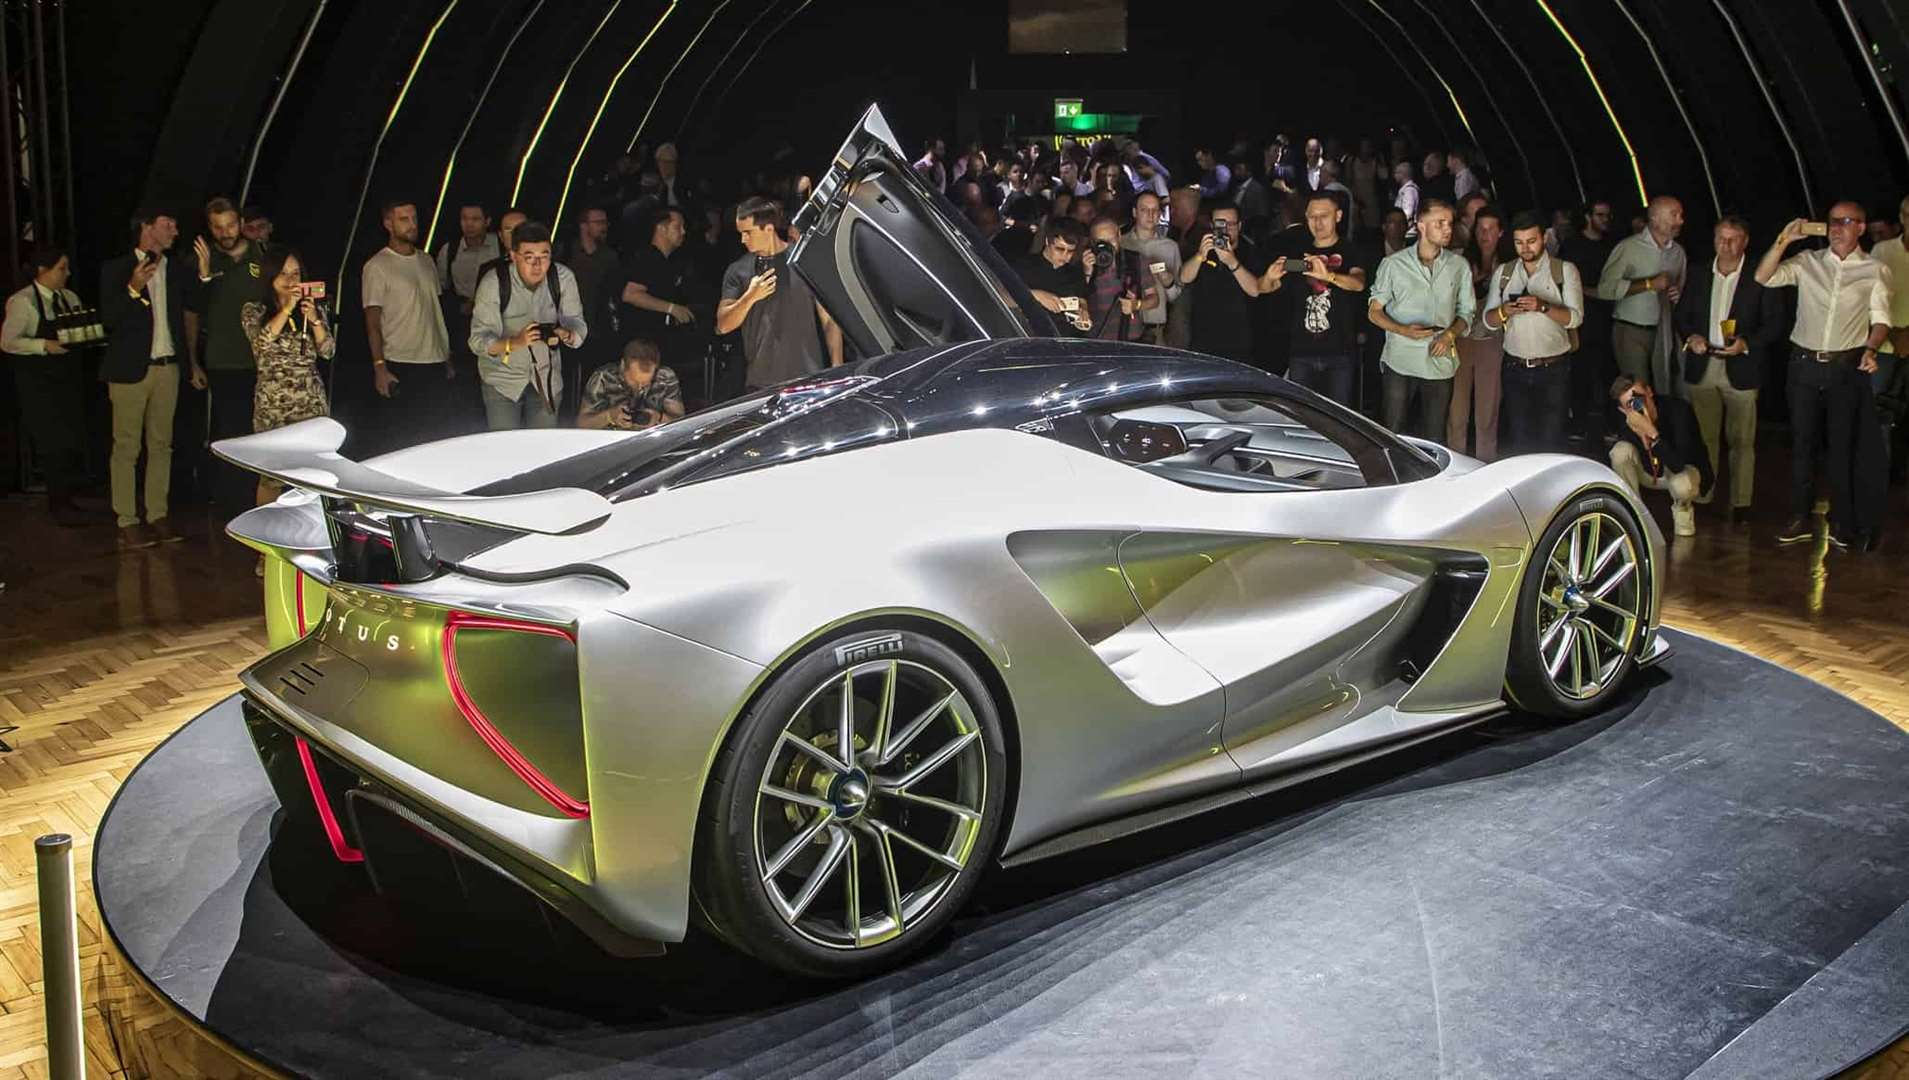 The Lotus Evija revealed showing large venturi